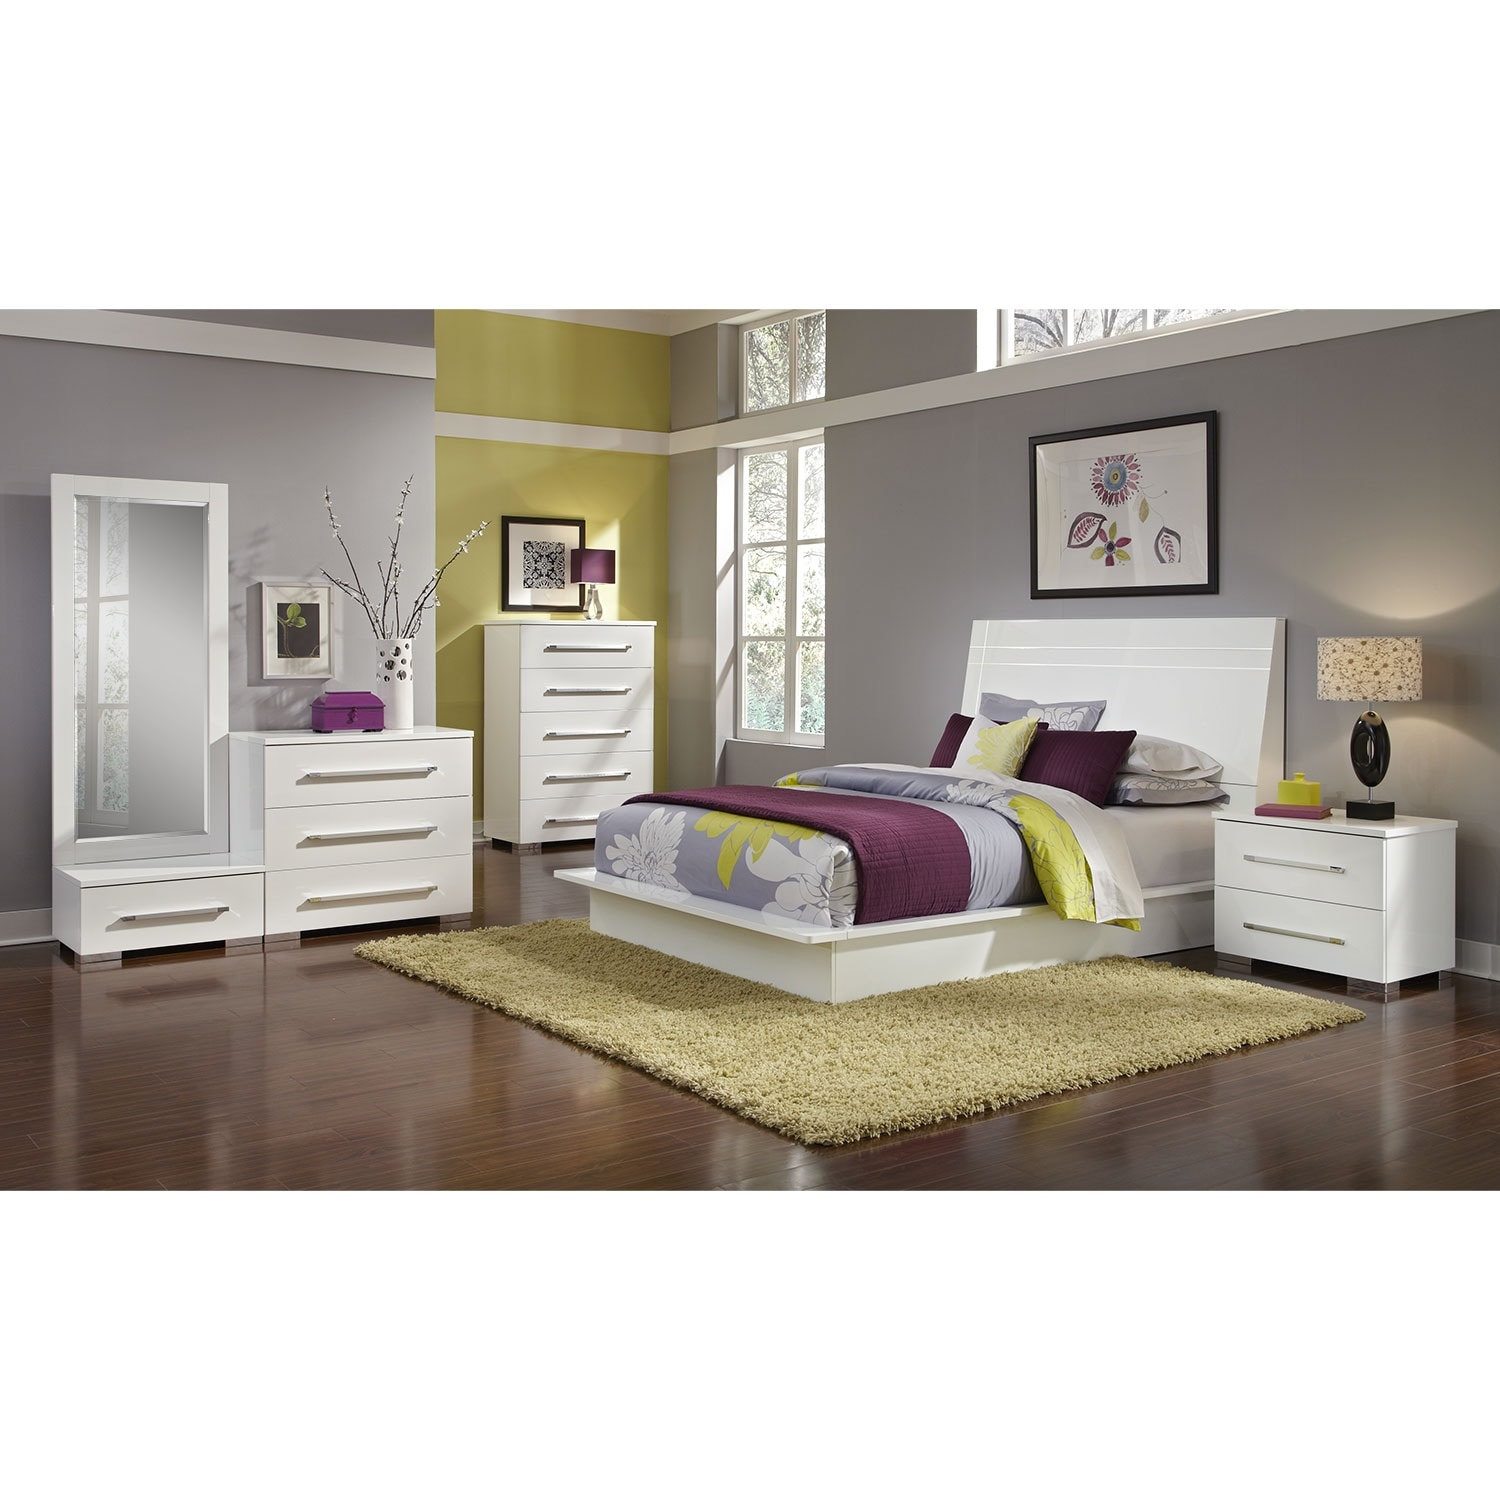 Bedroom Furniture - Dimora 7-Piece King Panel Bedroom Set - White